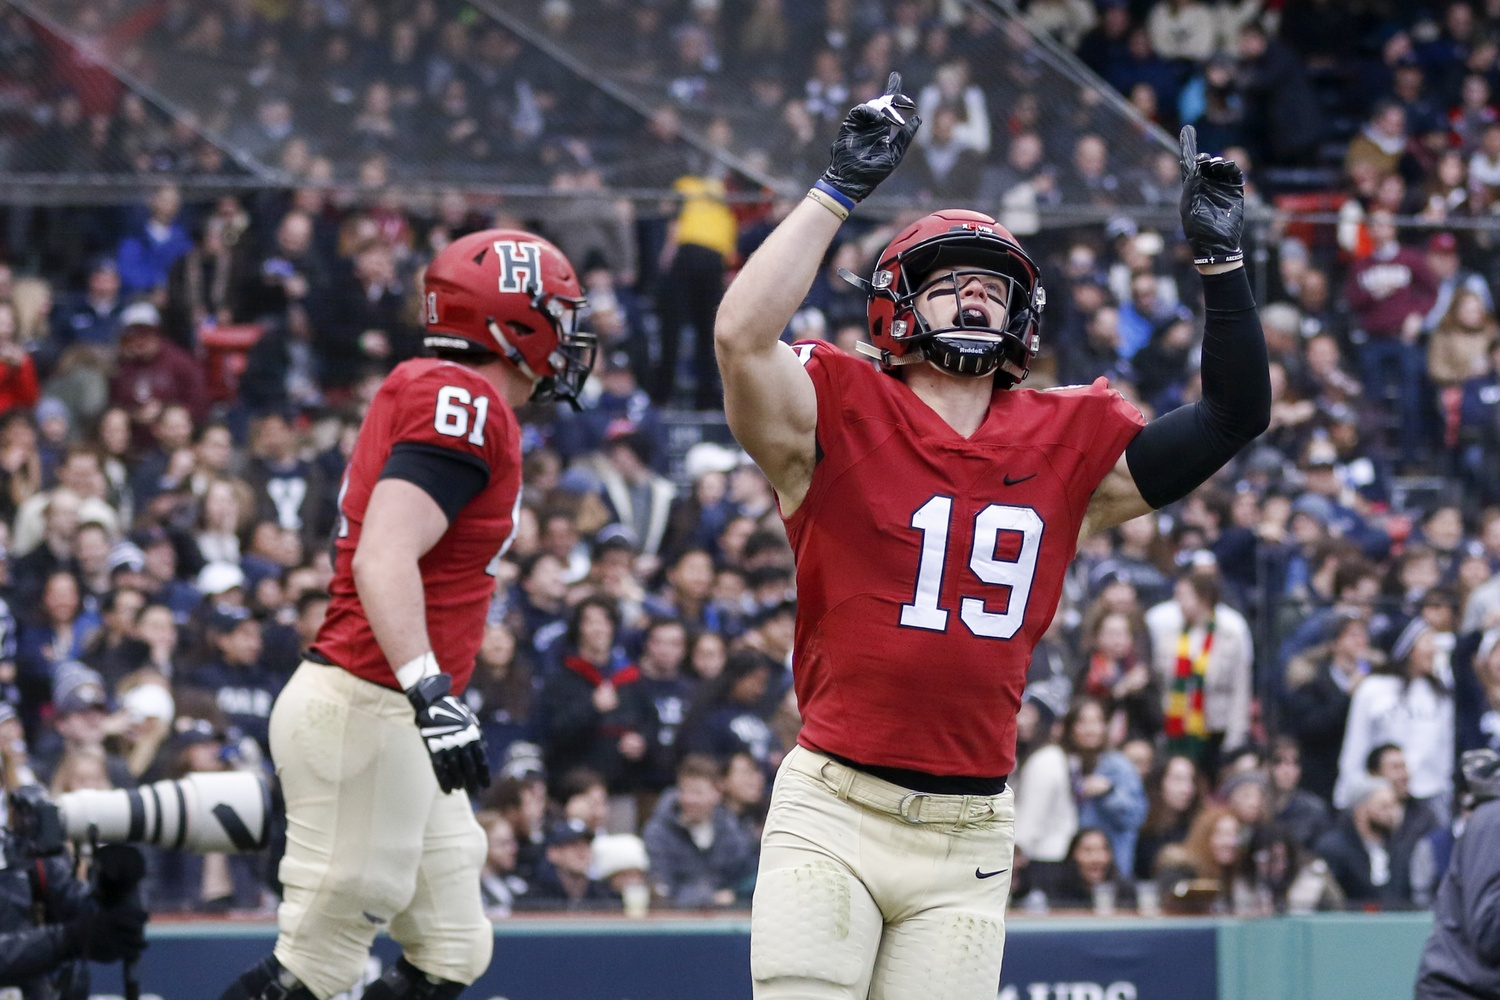 reputable site c8285 d0f6d Harvard Beats Yale in 135th Game, 45-27 | Sports | The ...